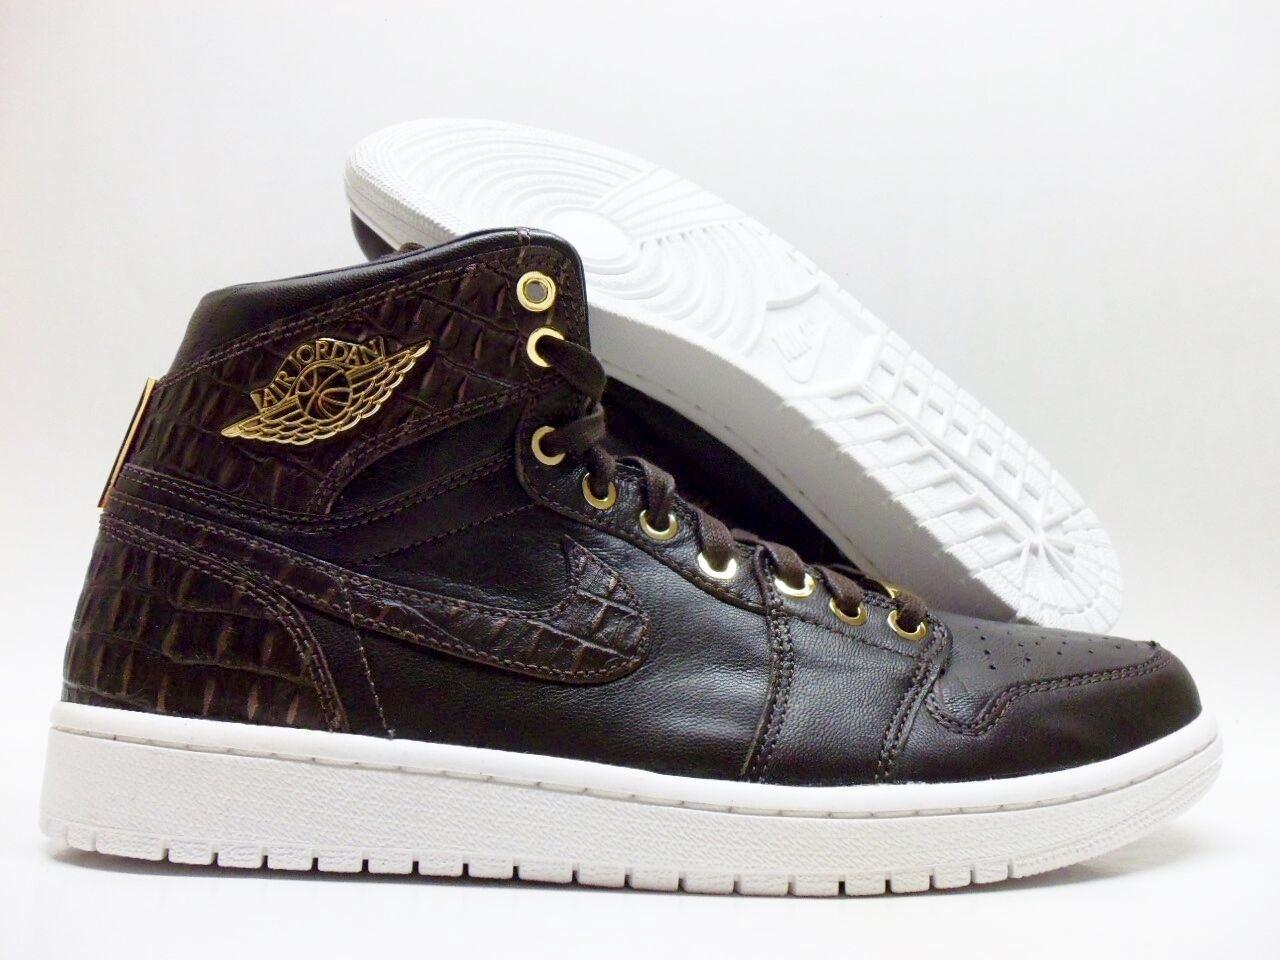 Nike Air Jordan 1 metalico Pinnacle marron / oro metalico 1 tamaño hombres 14 [705075-205] 5e194e